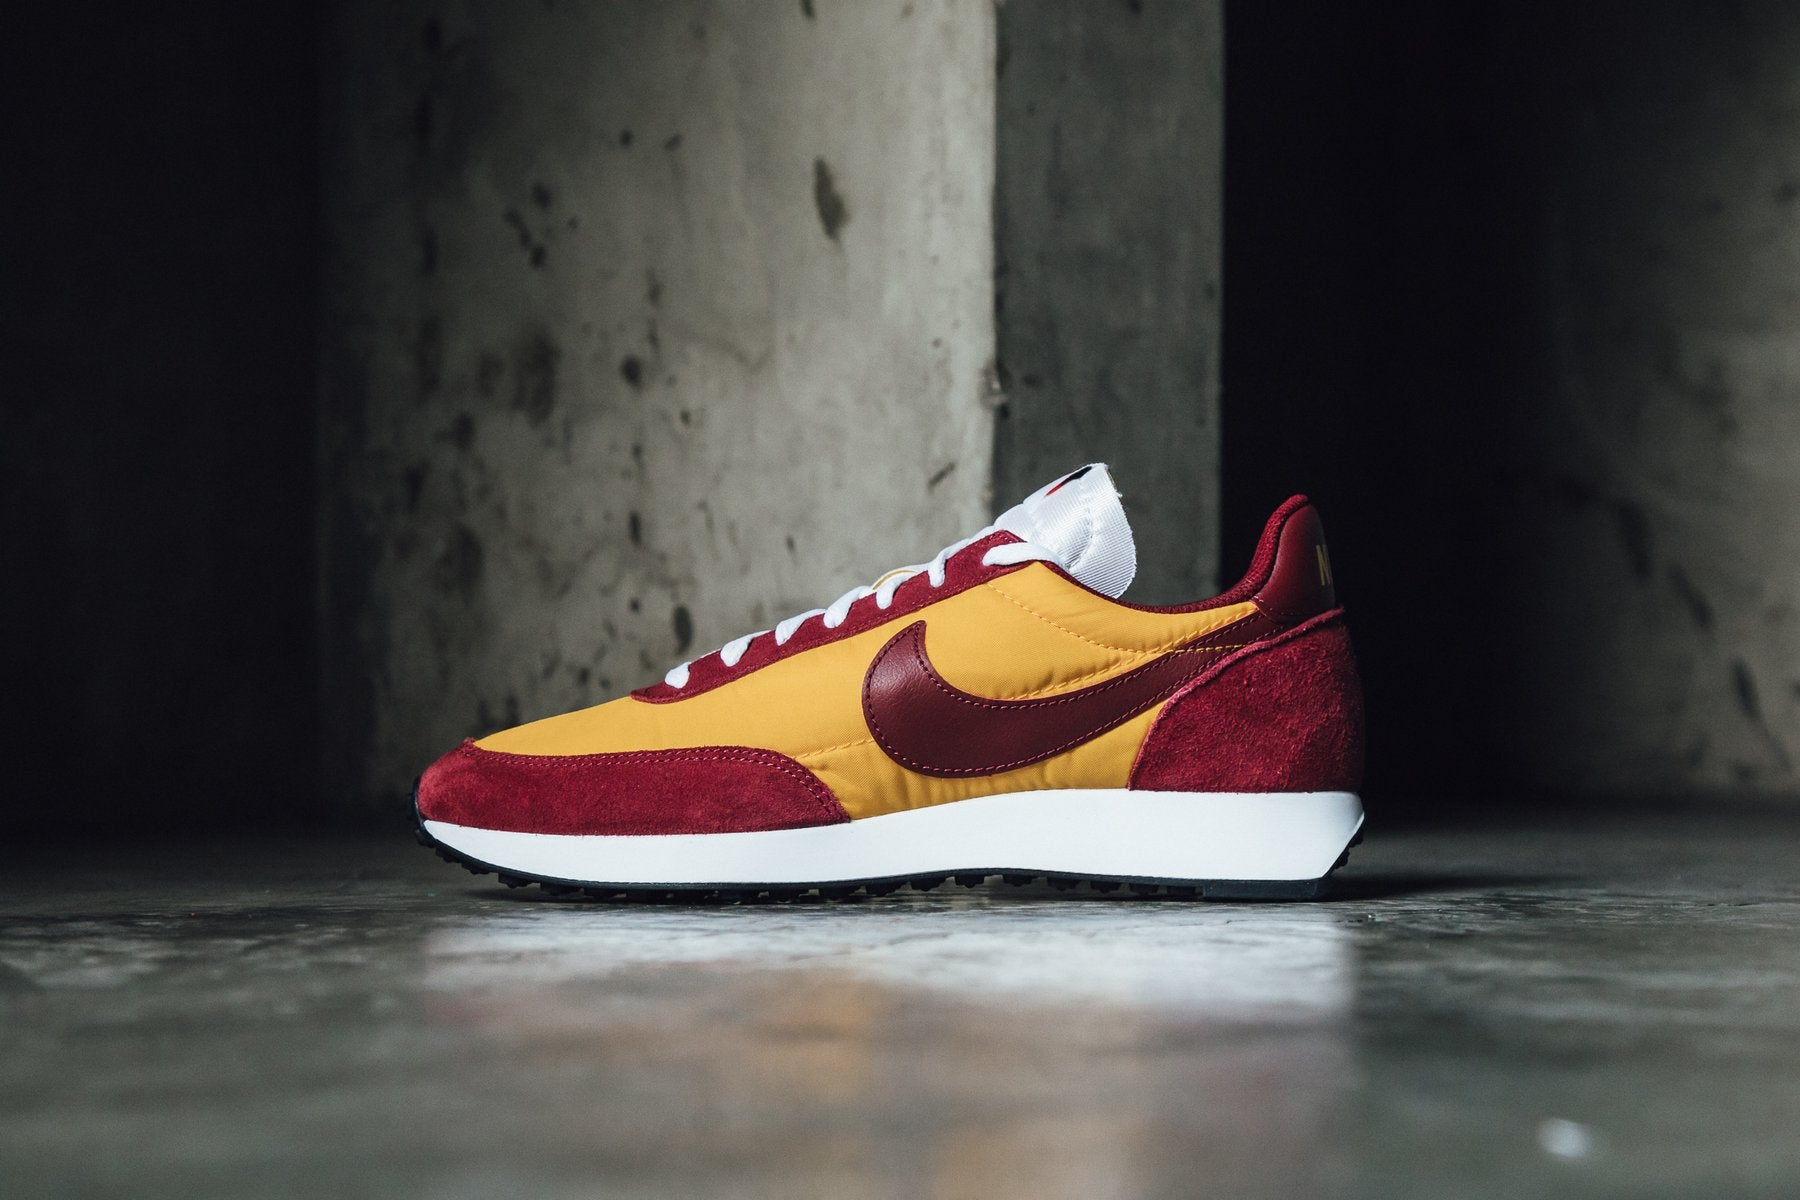 Nike Air Tailwind 79 - University Gold/Team Red/White/Black #487754-701-Preorder Item-Navy Selected Shop